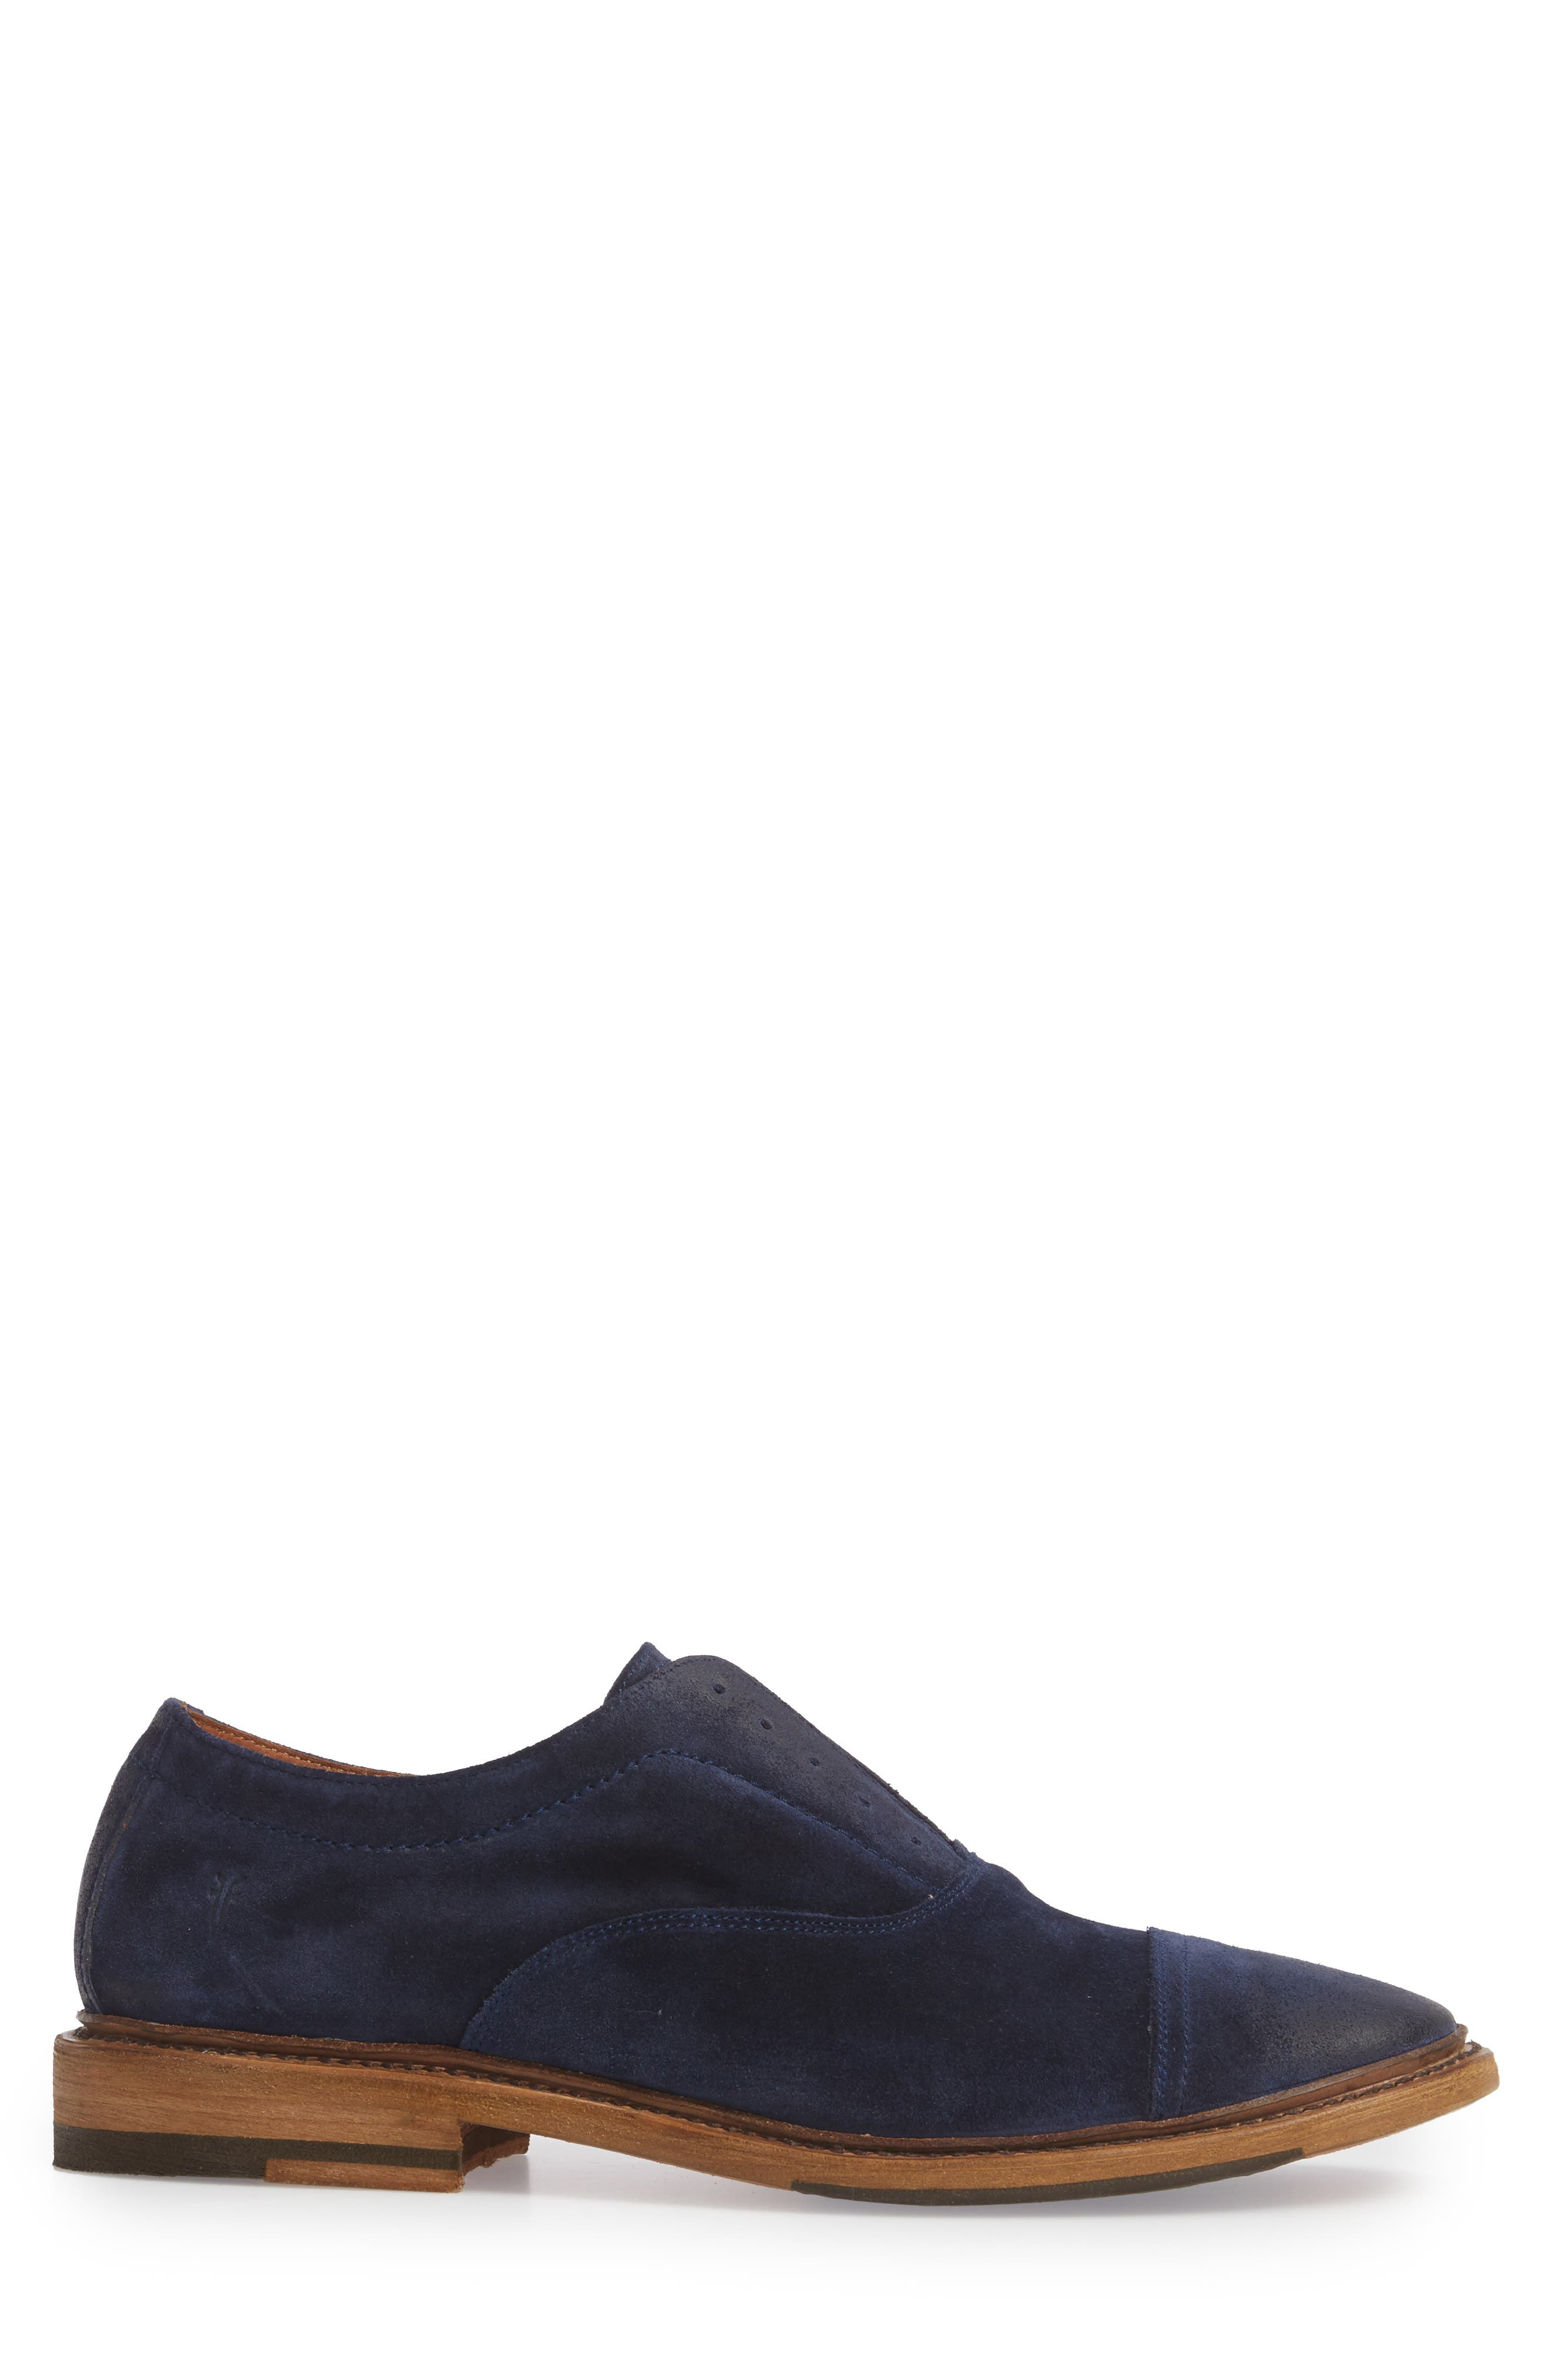 Paul Bal Cap Toe Oxford,                             Alternate thumbnail 3, color,                             Navy Suede